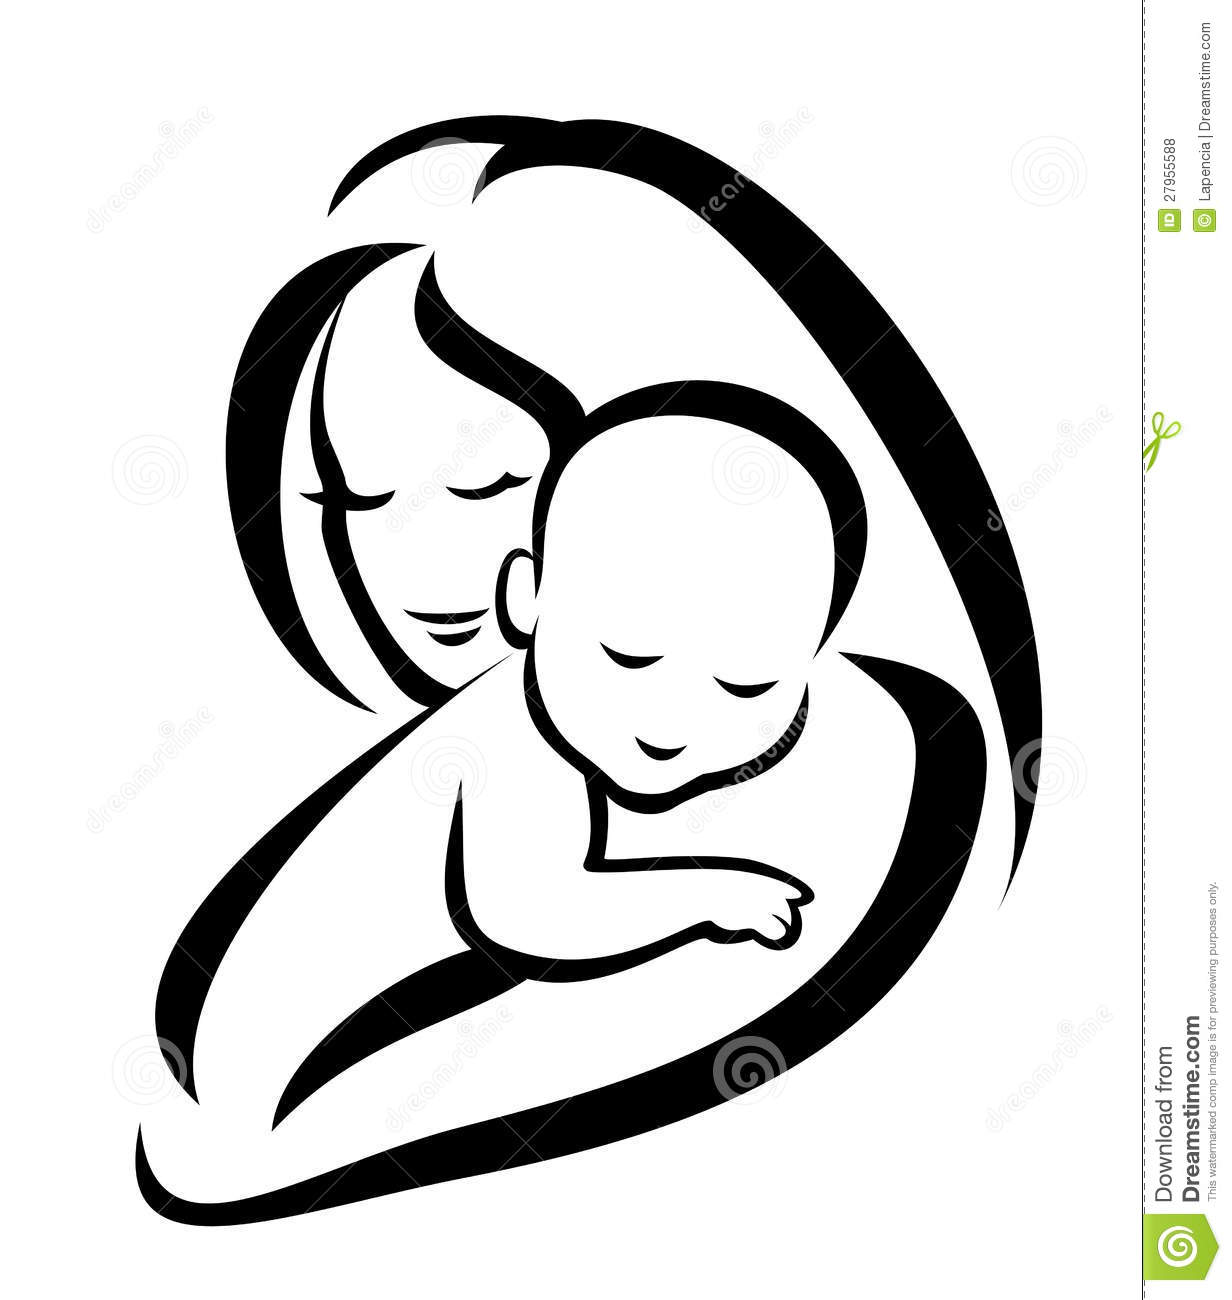 Mama mit baby clipart png black and white stock Mama mit baby clipart - ClipartFox png black and white stock